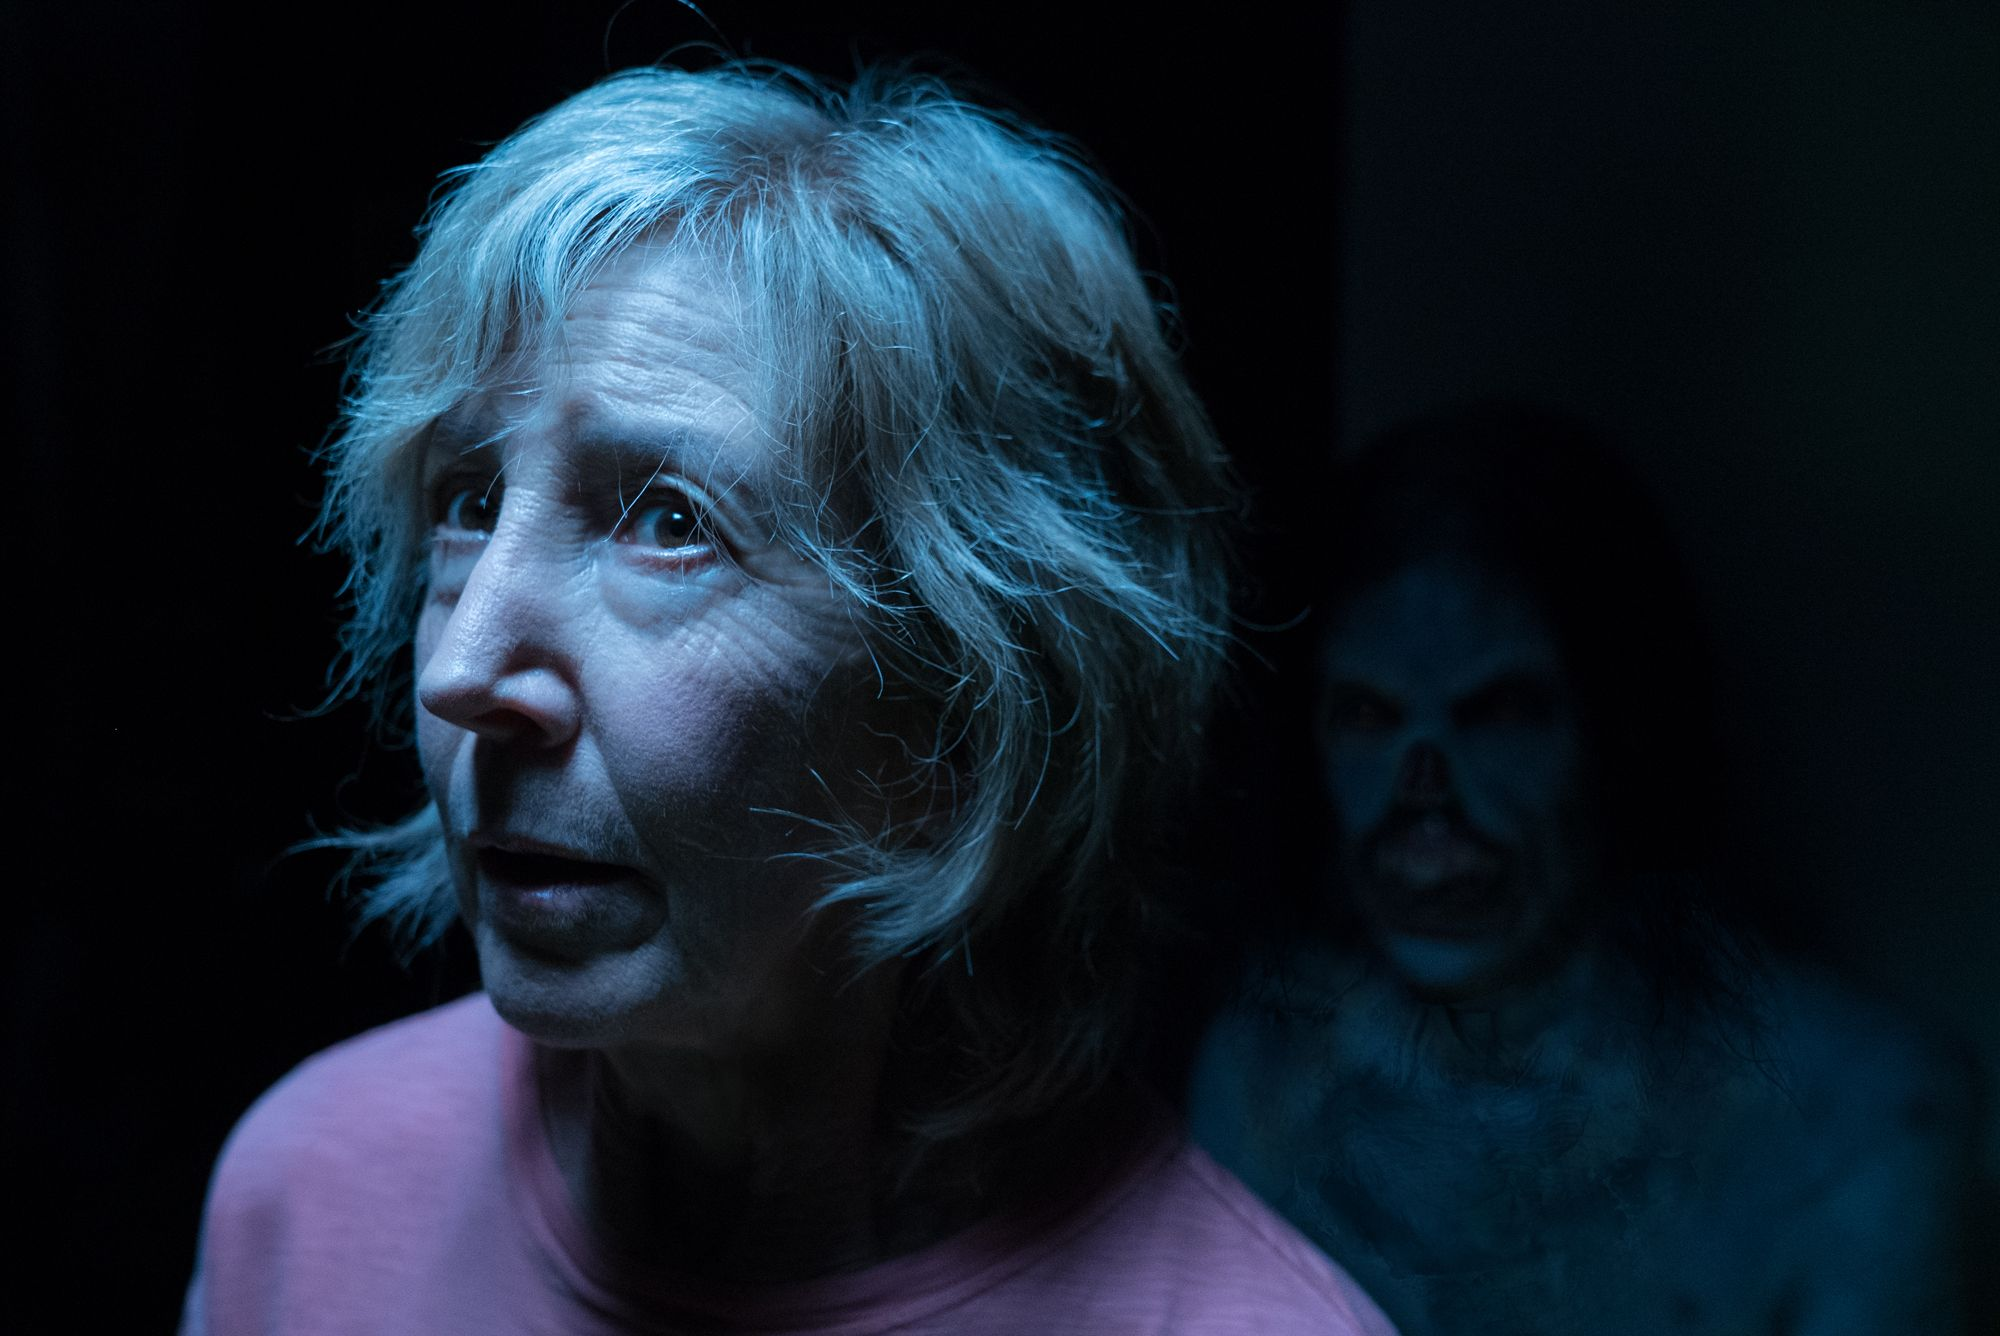 Latest 'Insidious' can't turn key for non-fans